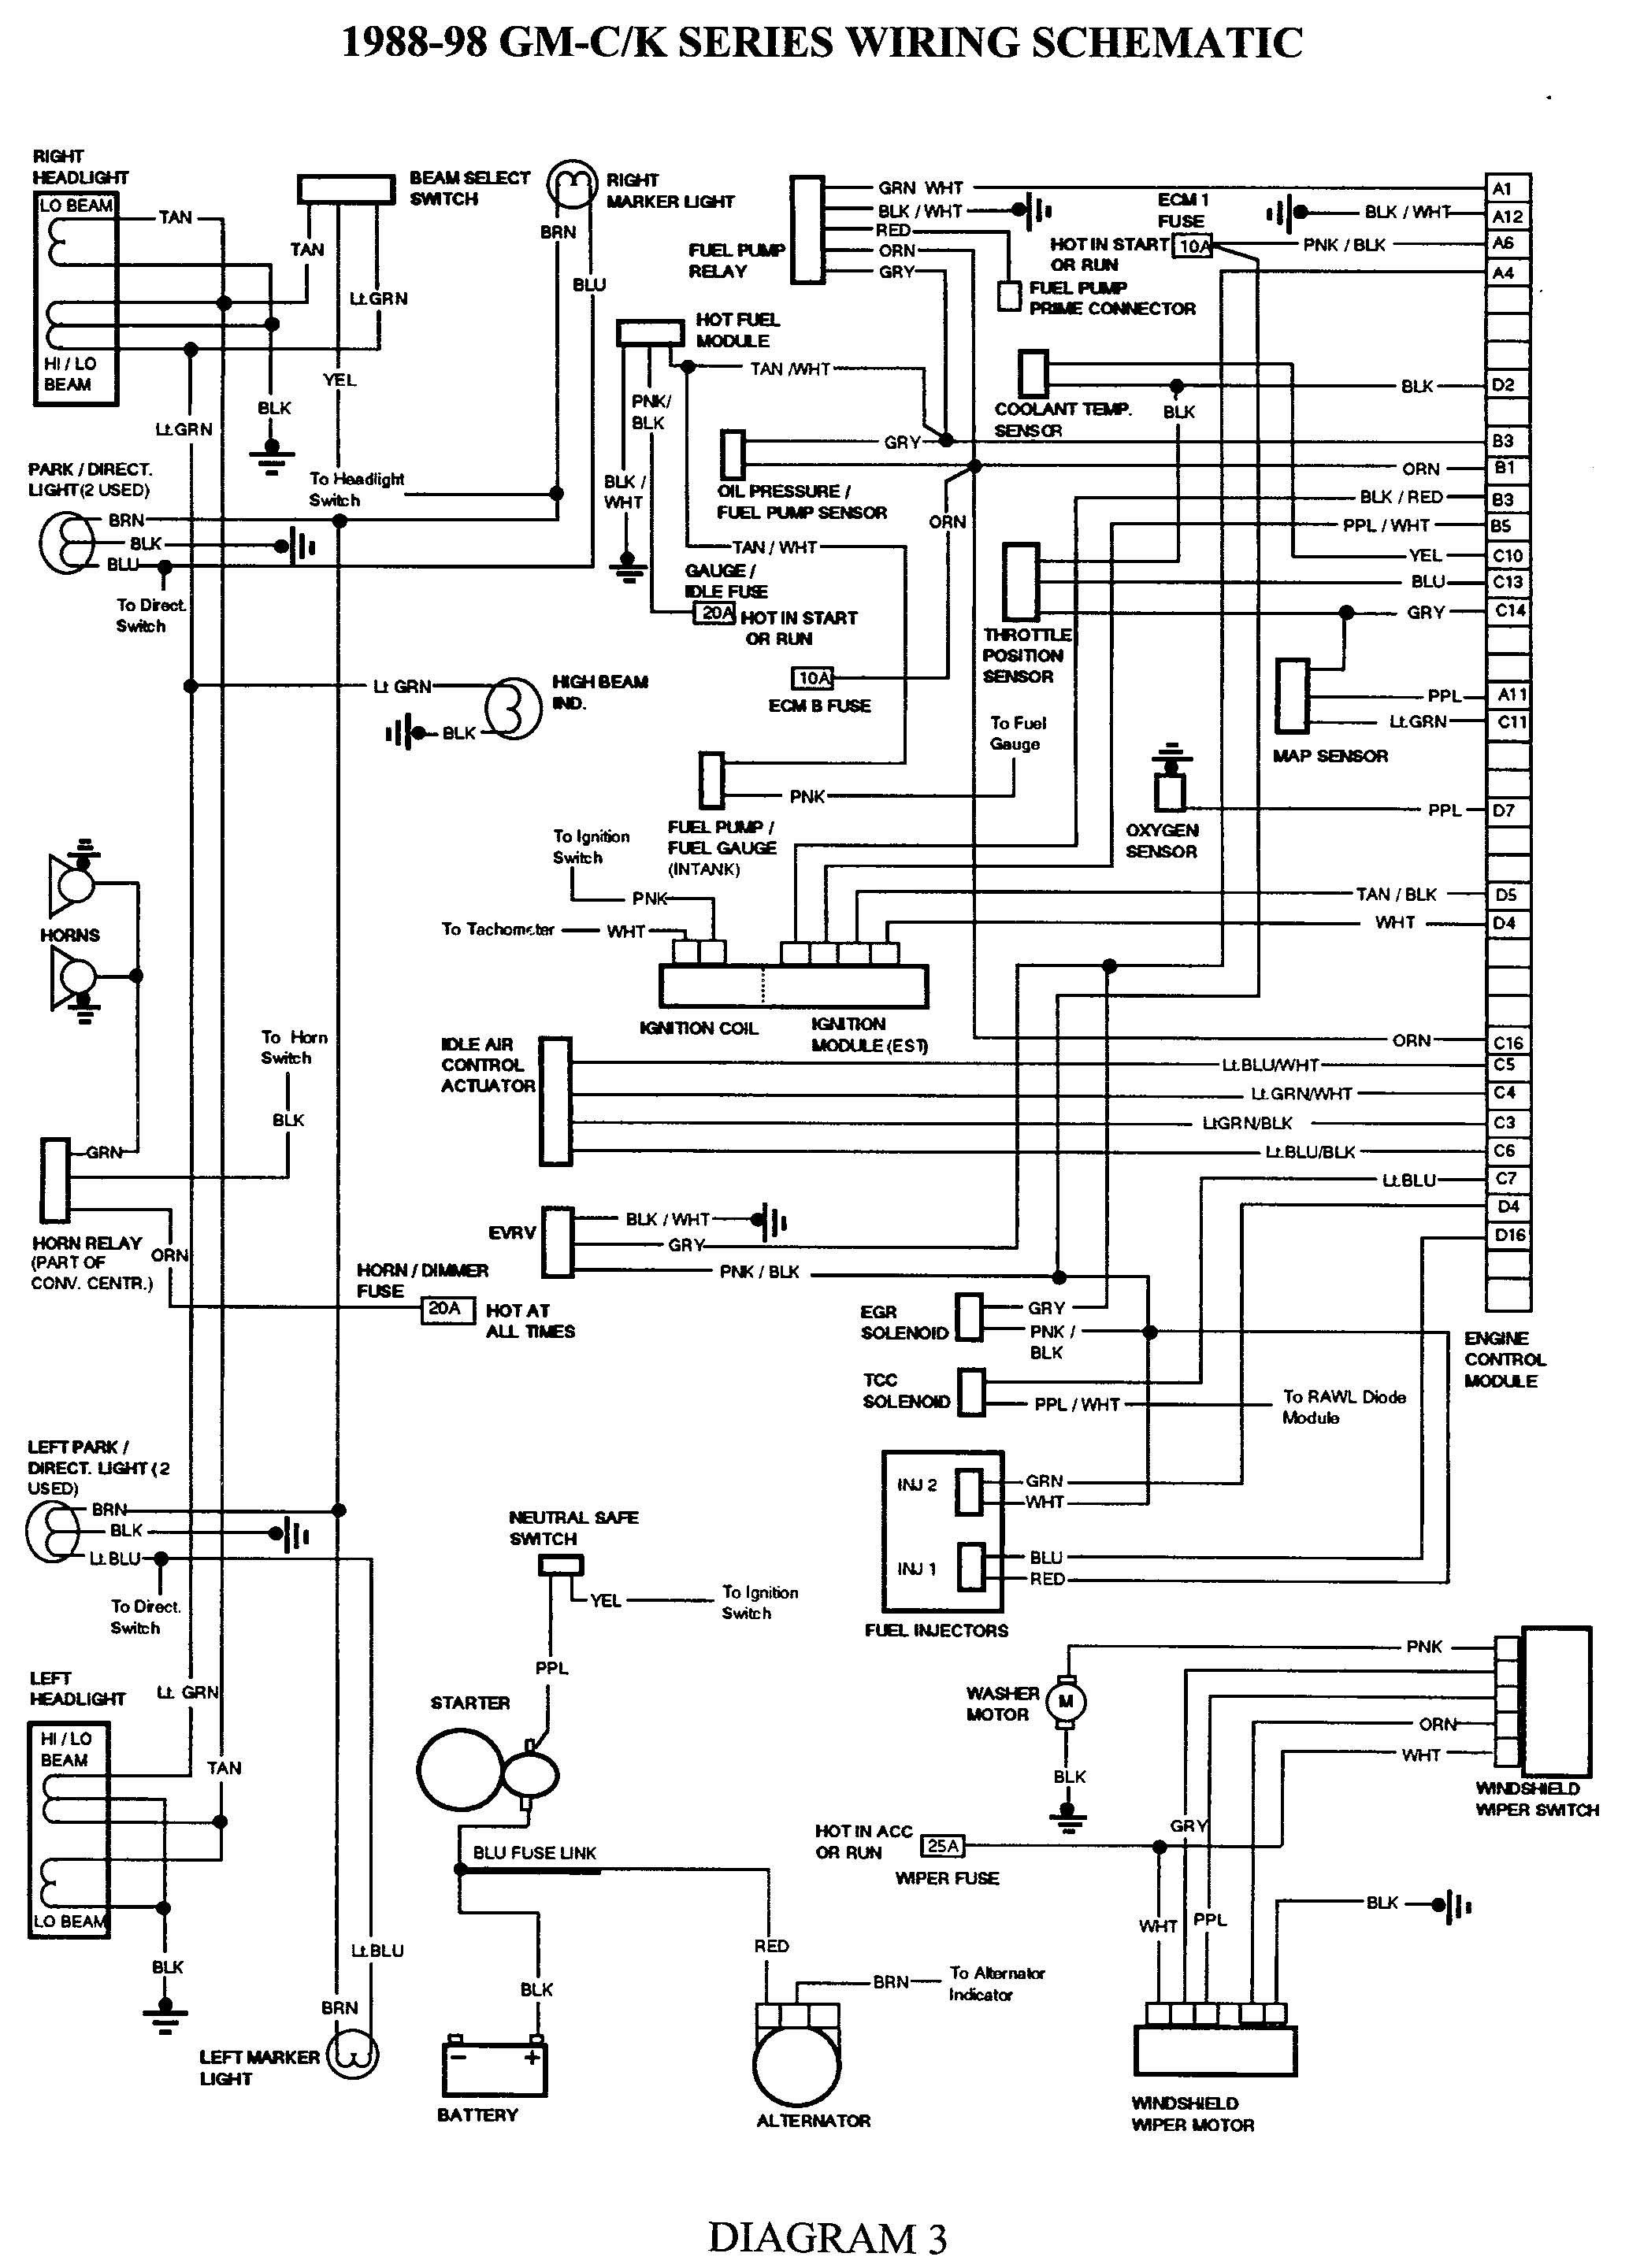 Gmc Wiring Harness - Data Wiring Diagram Schematic - Wiring Harness Diagram